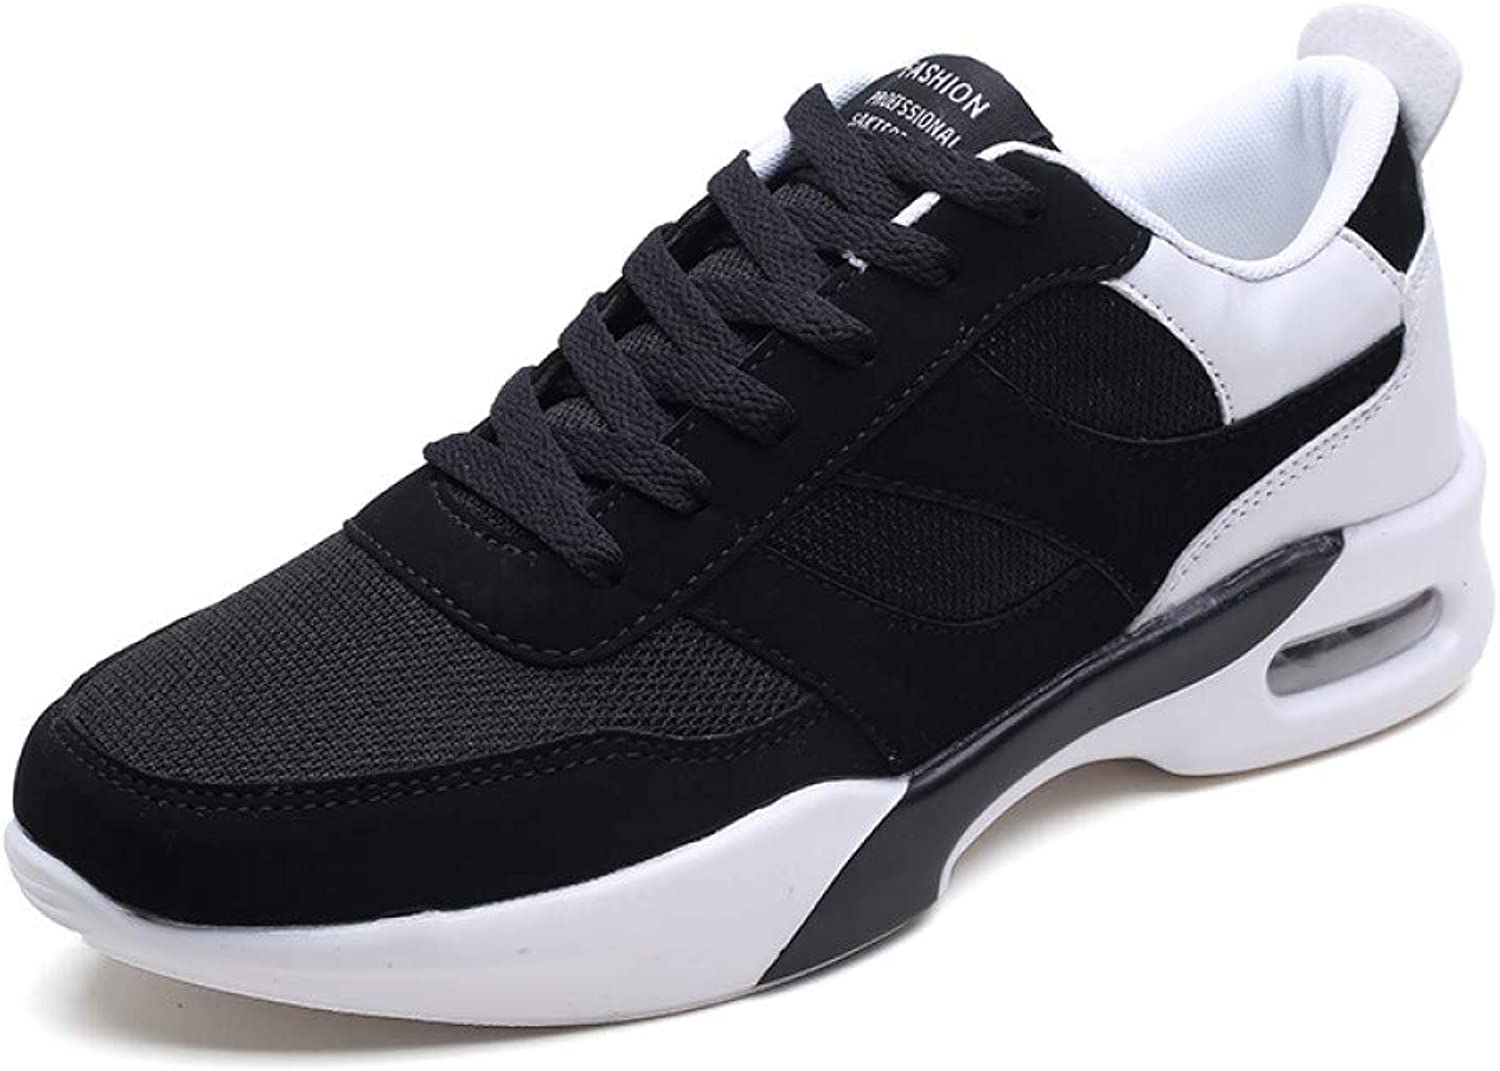 WDDGPZYDX Fashion Men Popular Casual shoes Comfortable Breathable Male shoes Autumn And Winter Sneakers warm Men